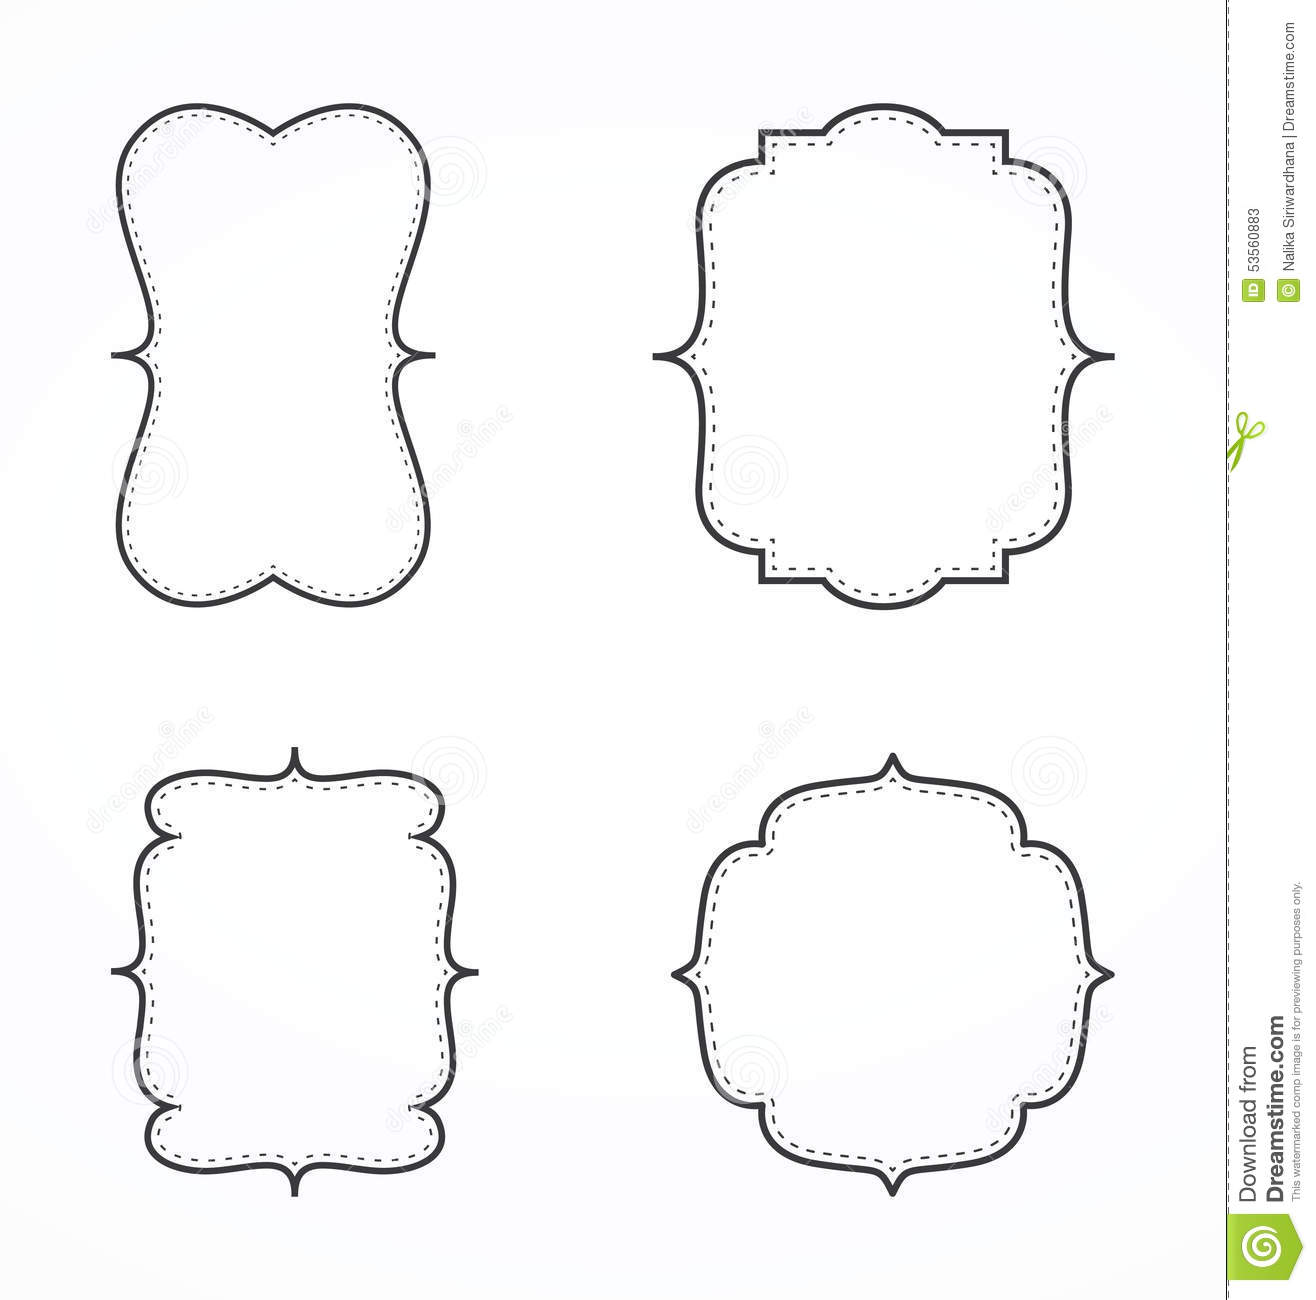 Fancy Border Cliparts  Free download best Fancy Border